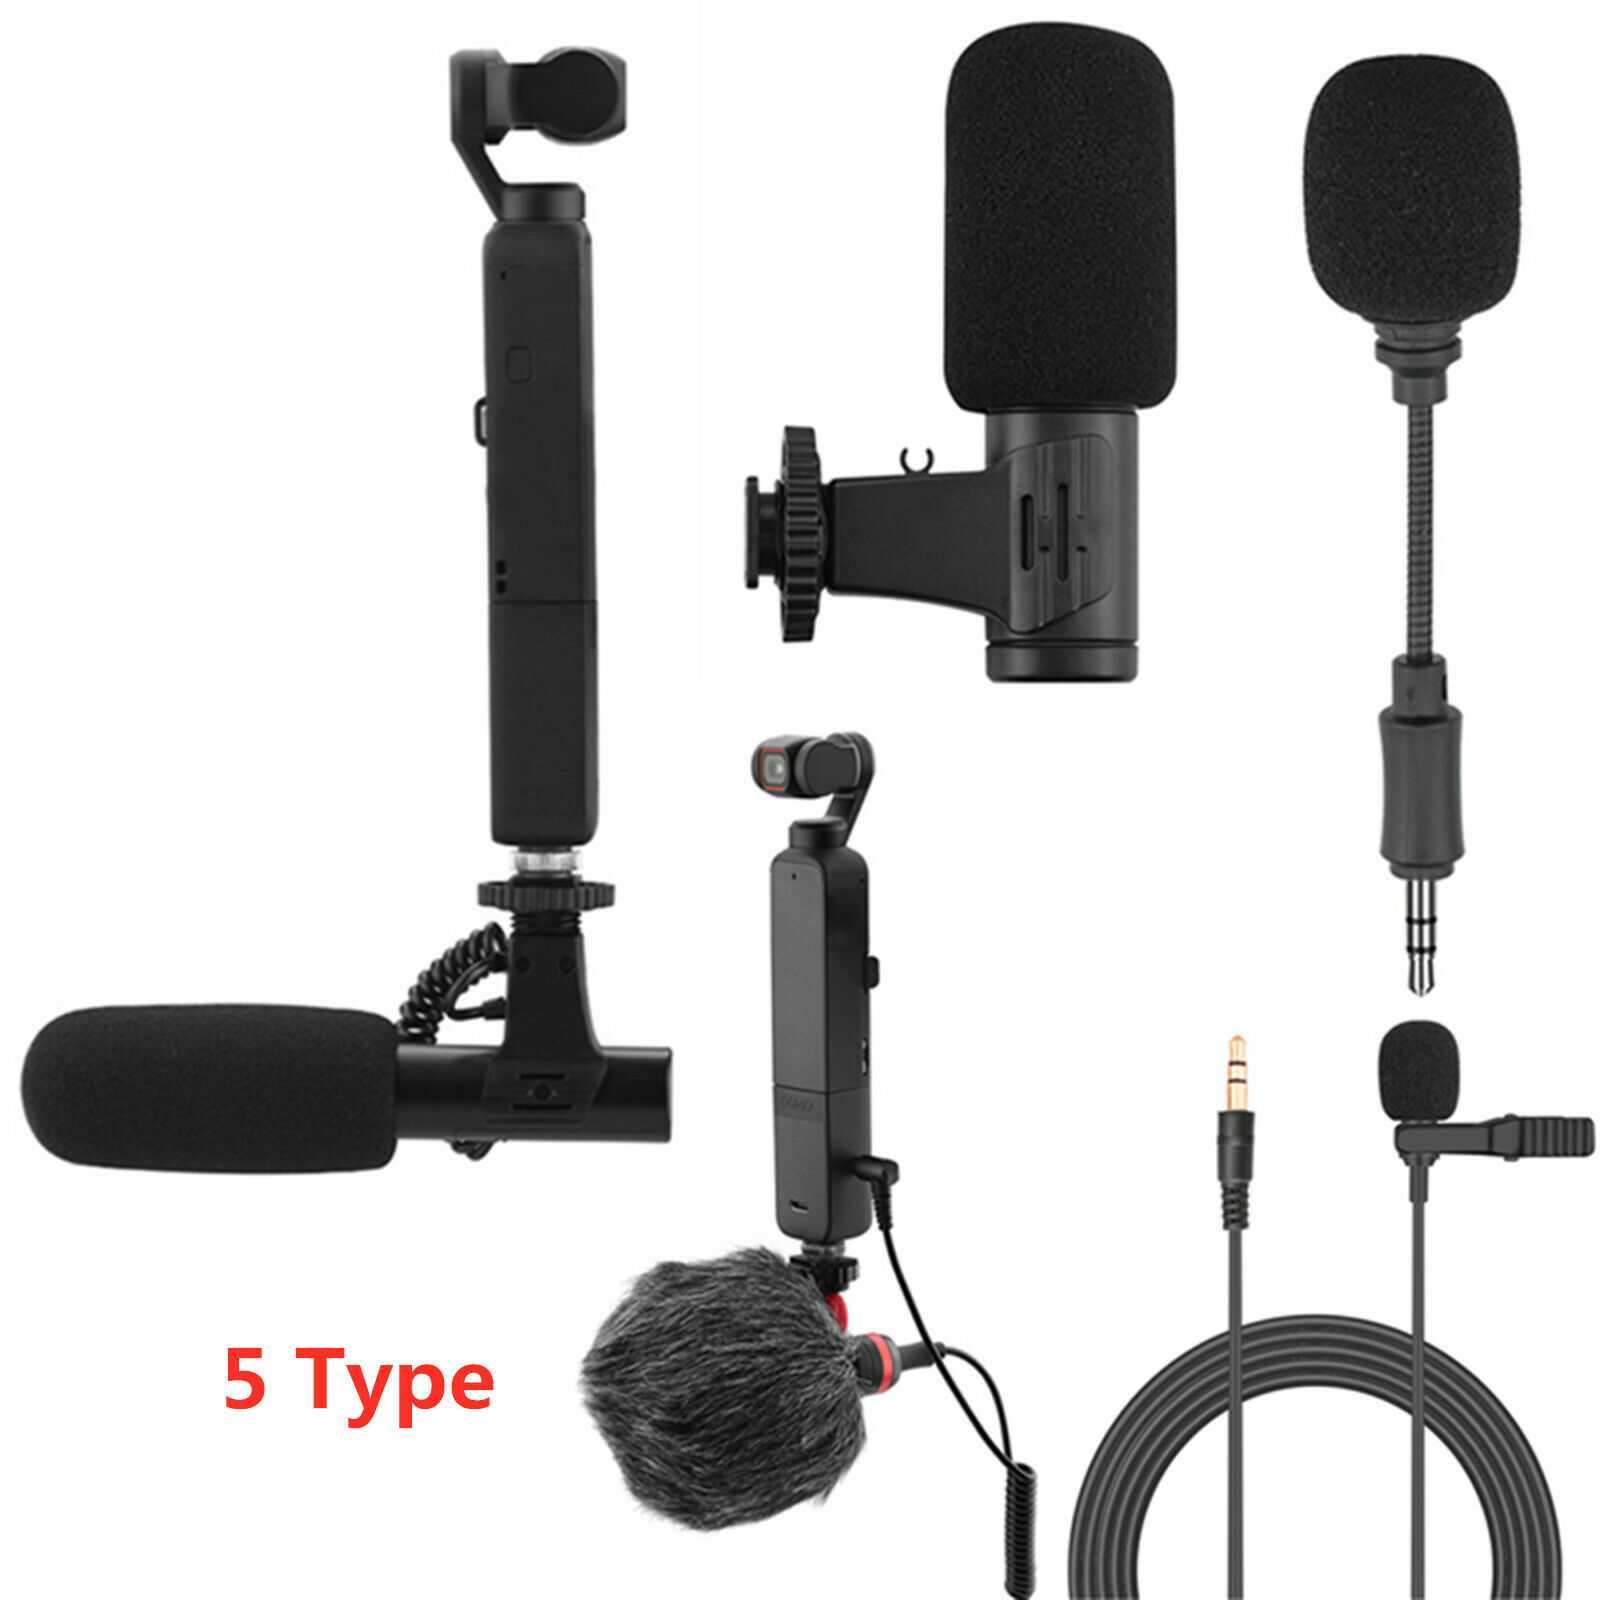 Short/Long Microphone for DJI OSMO POCKET 2 Do-It-All Handle Gimbal Camera Part